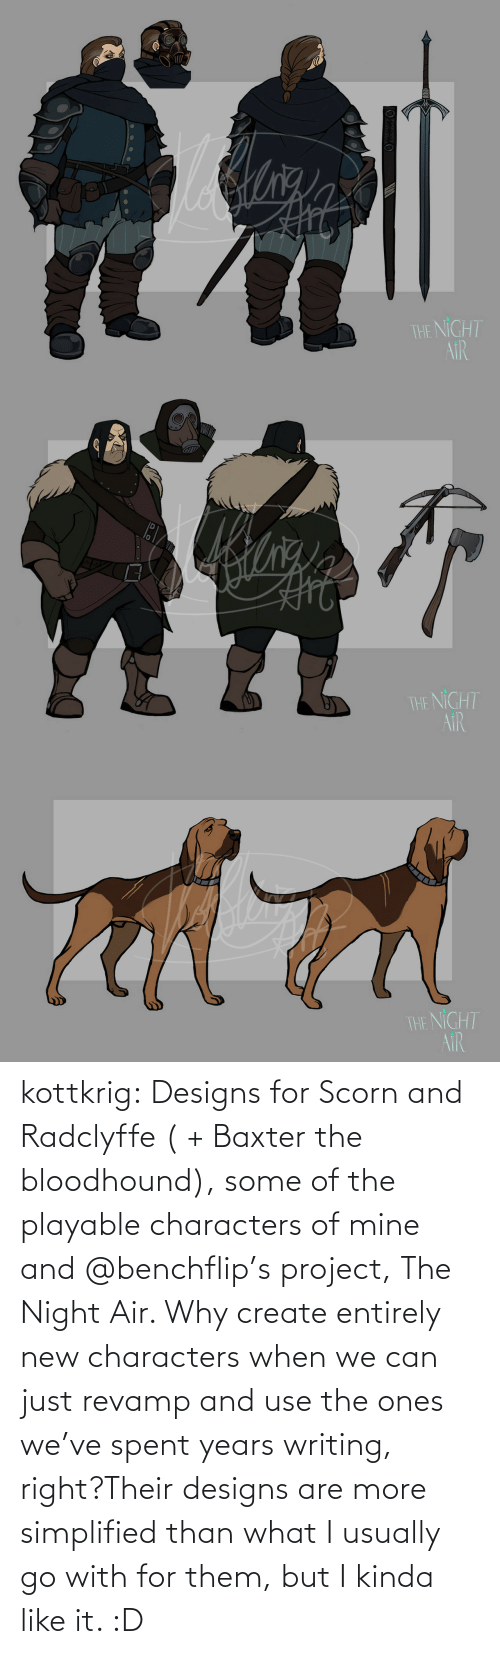 mine: kottkrig:  Designs for Scorn and Radclyffe ( + Baxter the bloodhound), some of the playable characters of mine and @benchflip's project, The Night Air. Why create entirely new characters when we can just revamp and use the ones we've spent years writing, right?Their designs are more simplified than what I usually go with for them, but I kinda like it. :D